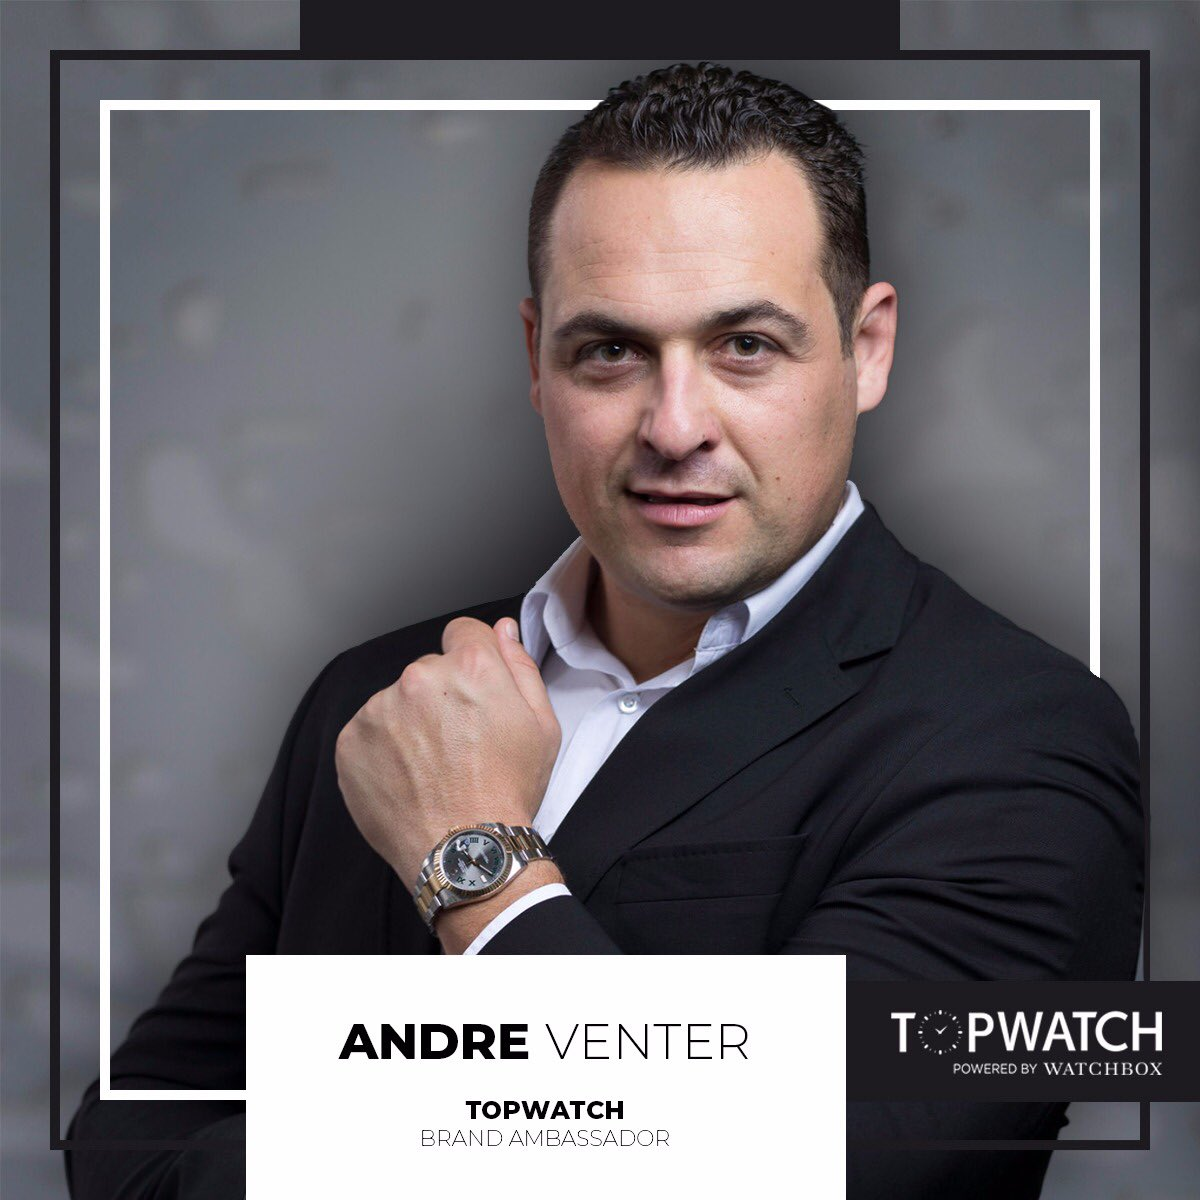 Guess who joined the #TopWatchSA Team! Welcome onboard Andre Venter! #TopWatchAmbassador